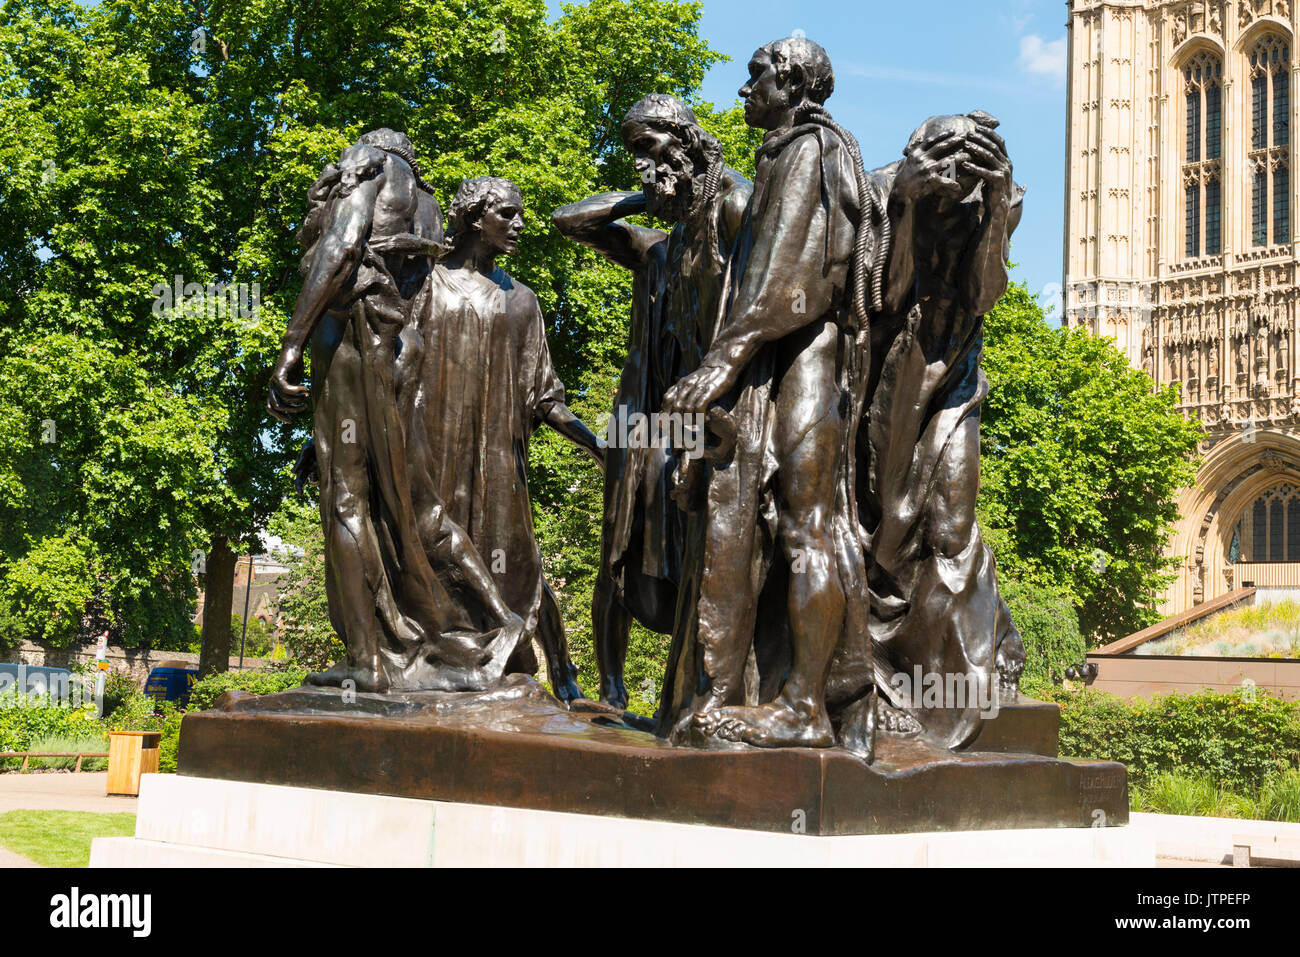 The Burghers of Calais statue sculpture bronze Auguste Rodin Victoria Tower Gardens Palace of Westminster Houses of Parliament 1884 - 89 tree trees - Stock Image